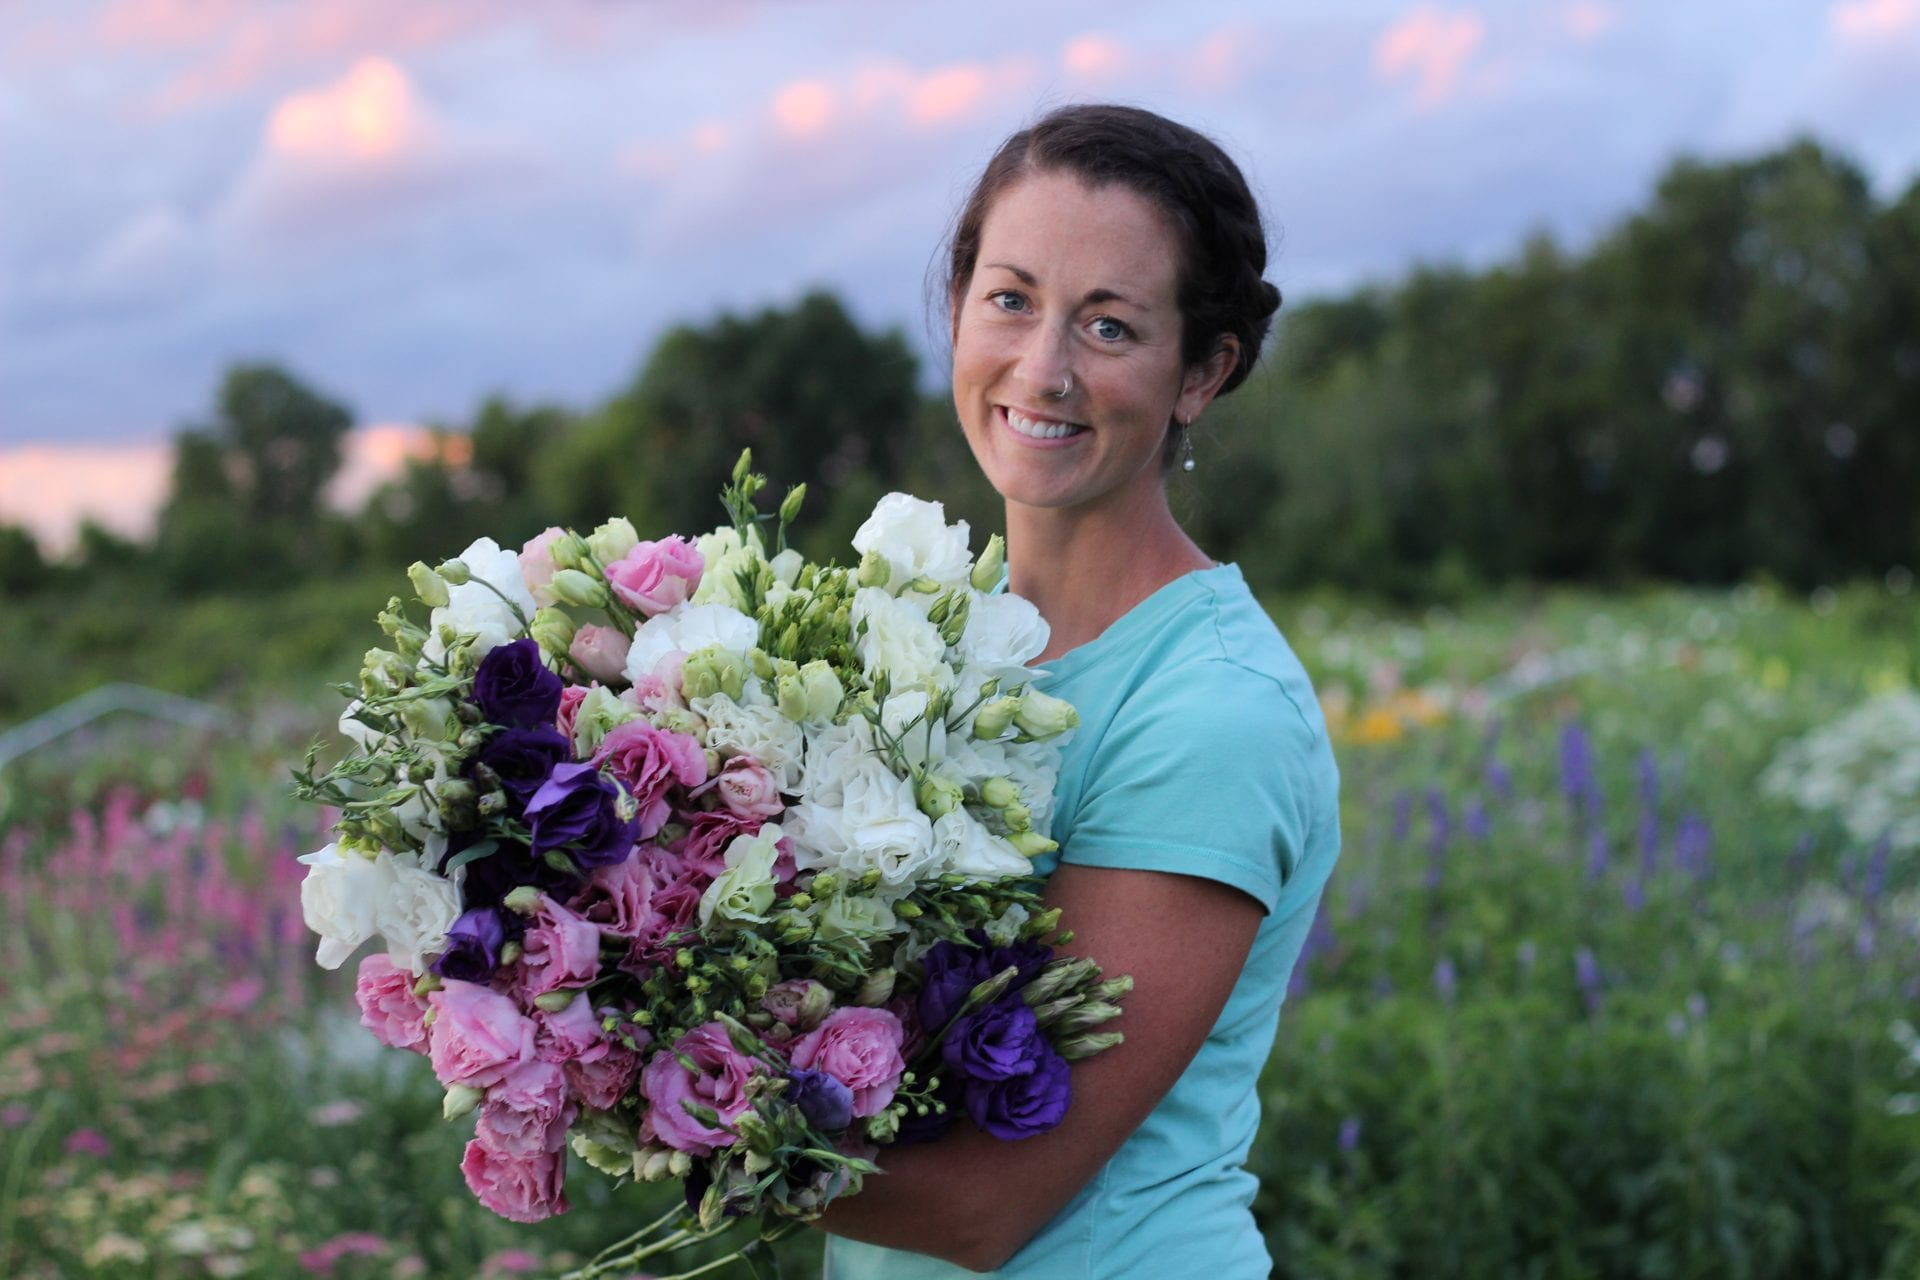 Wild air flower farm local sustainable fresh beauty greenstar it is difficult to overstate the beauty of a flower farm nestled into groundswell incubator farms windy hilltop site overlooking the ithaca valley izmirmasajfo